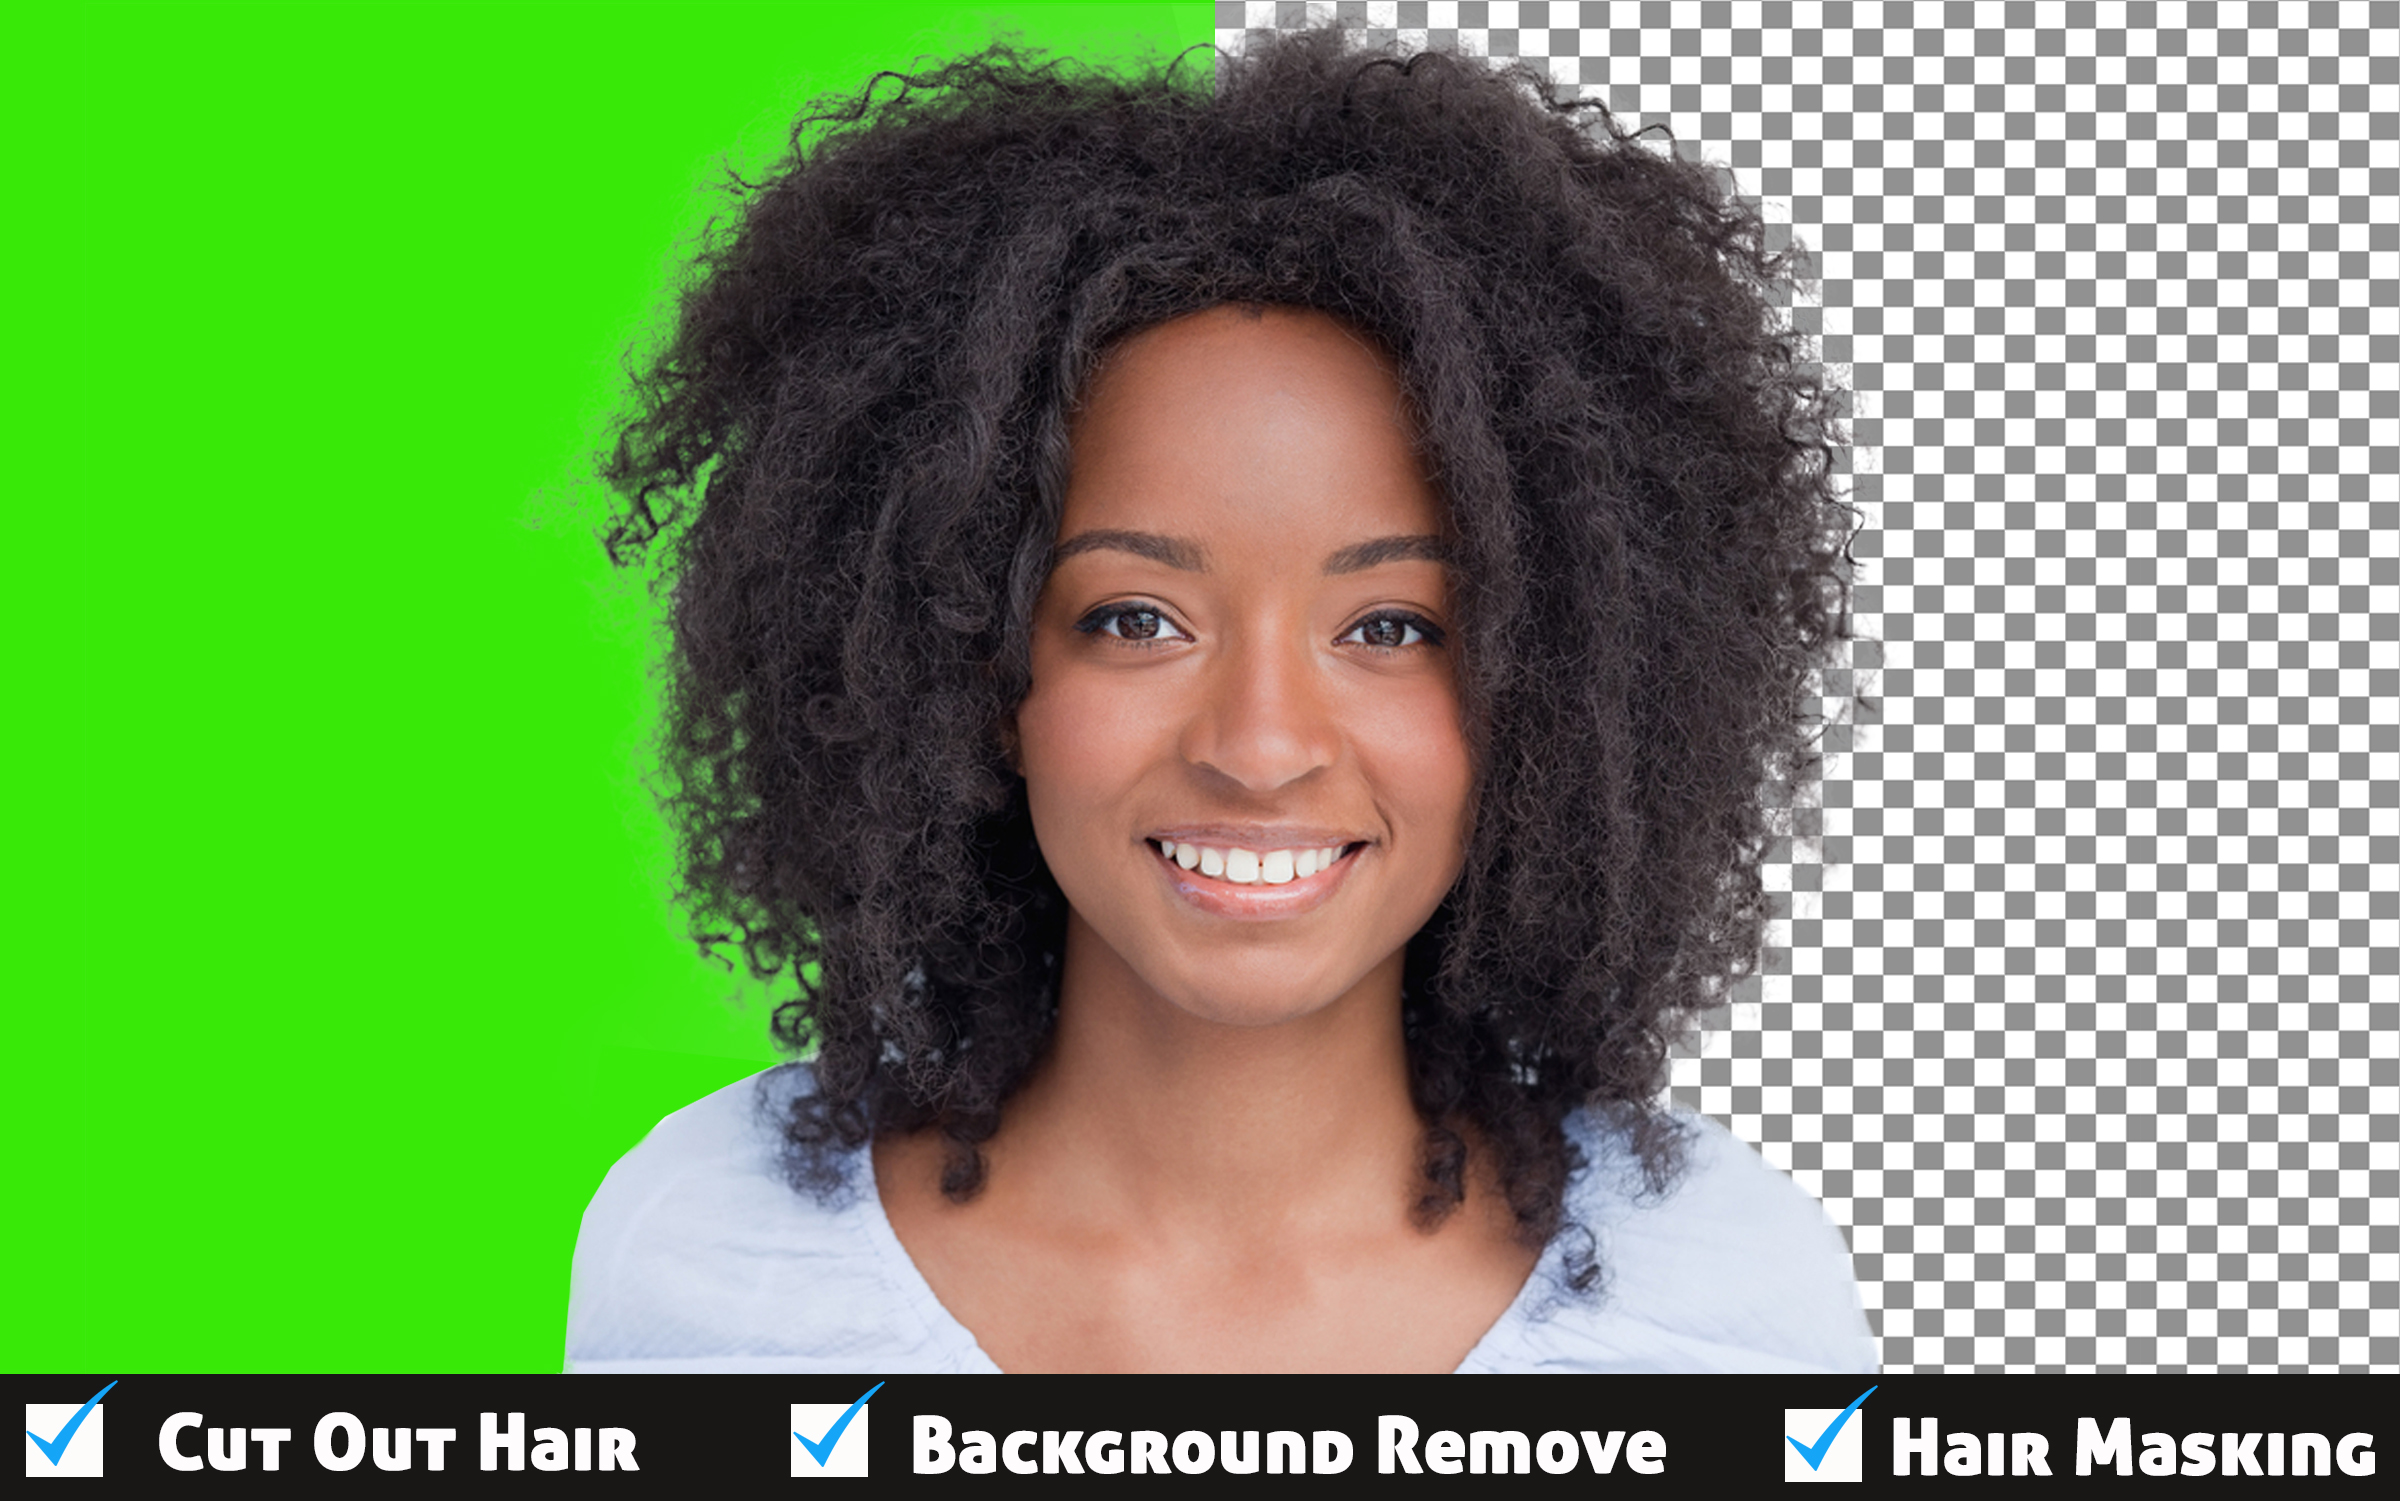 I will do photoshop hair masking or cut out hair professionally